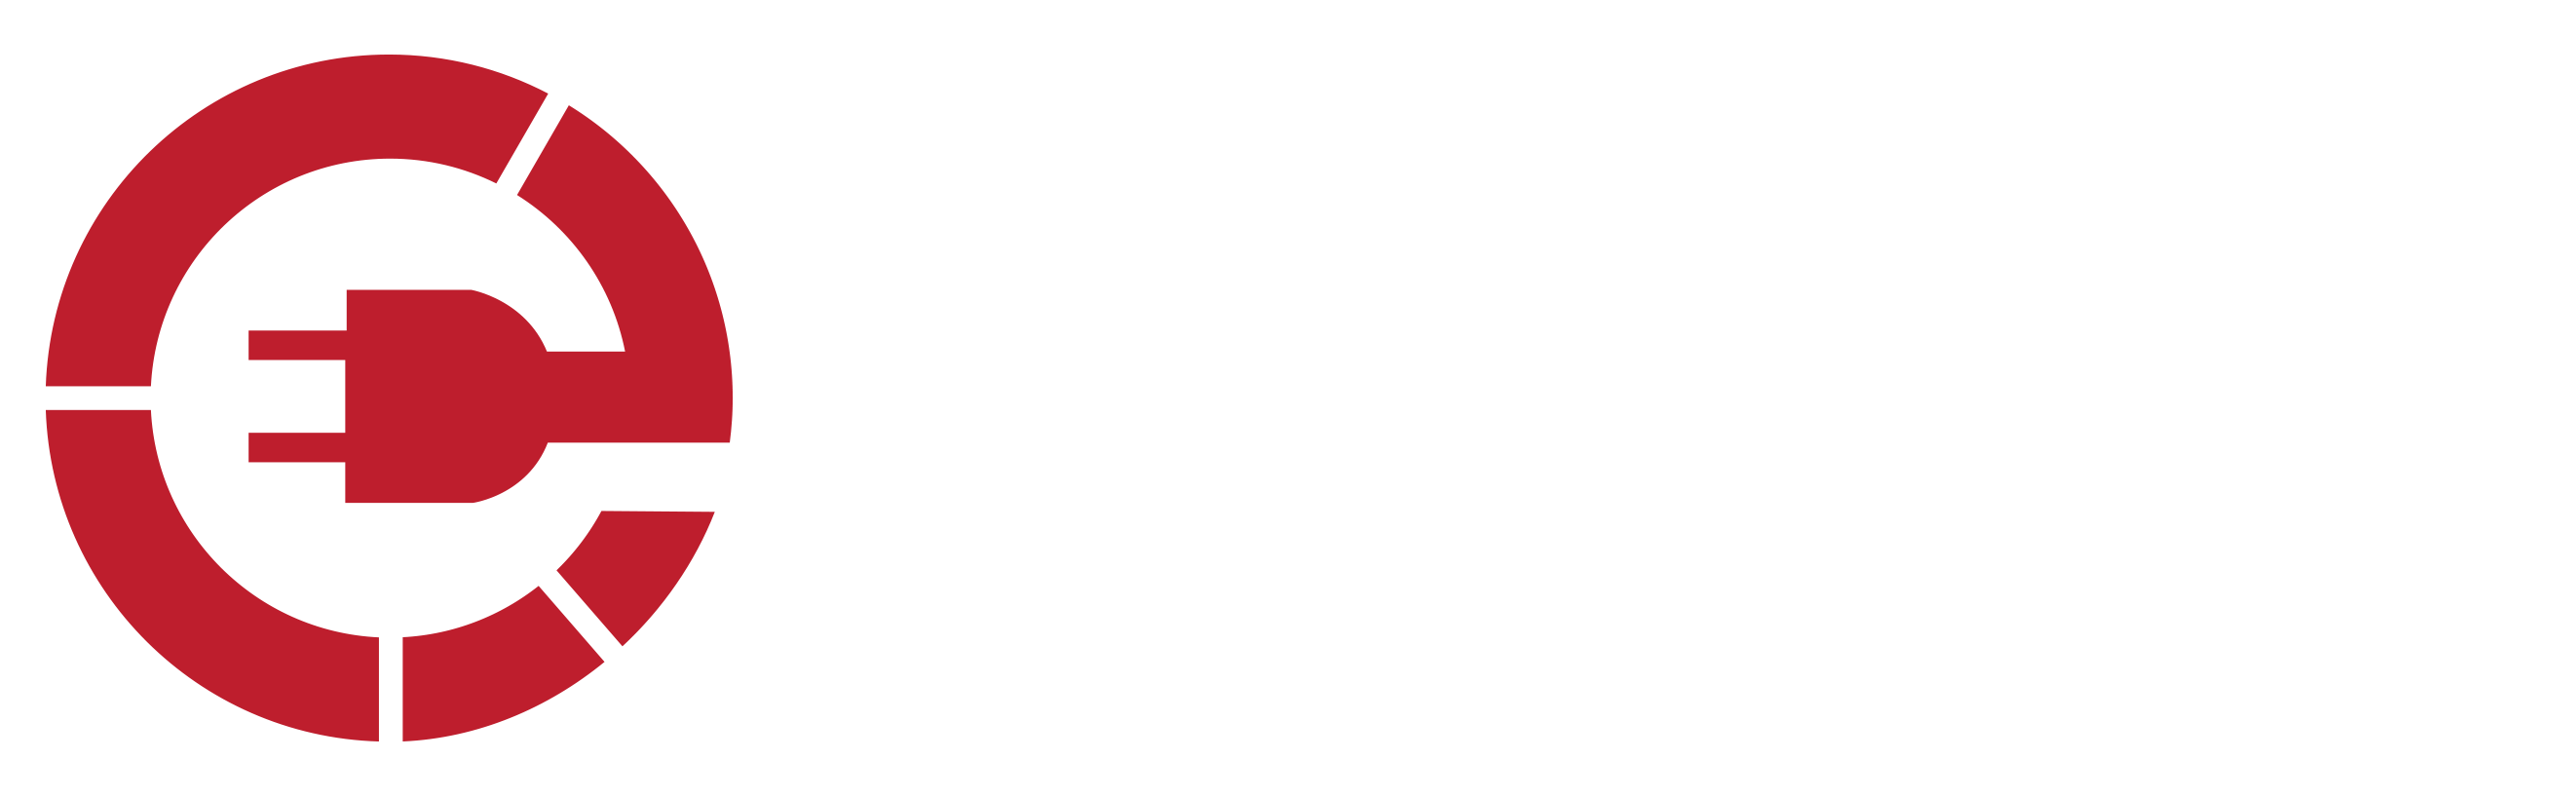 http://centralinspections.org/wp-content/uploads/2016/07/ce-logo-white.png